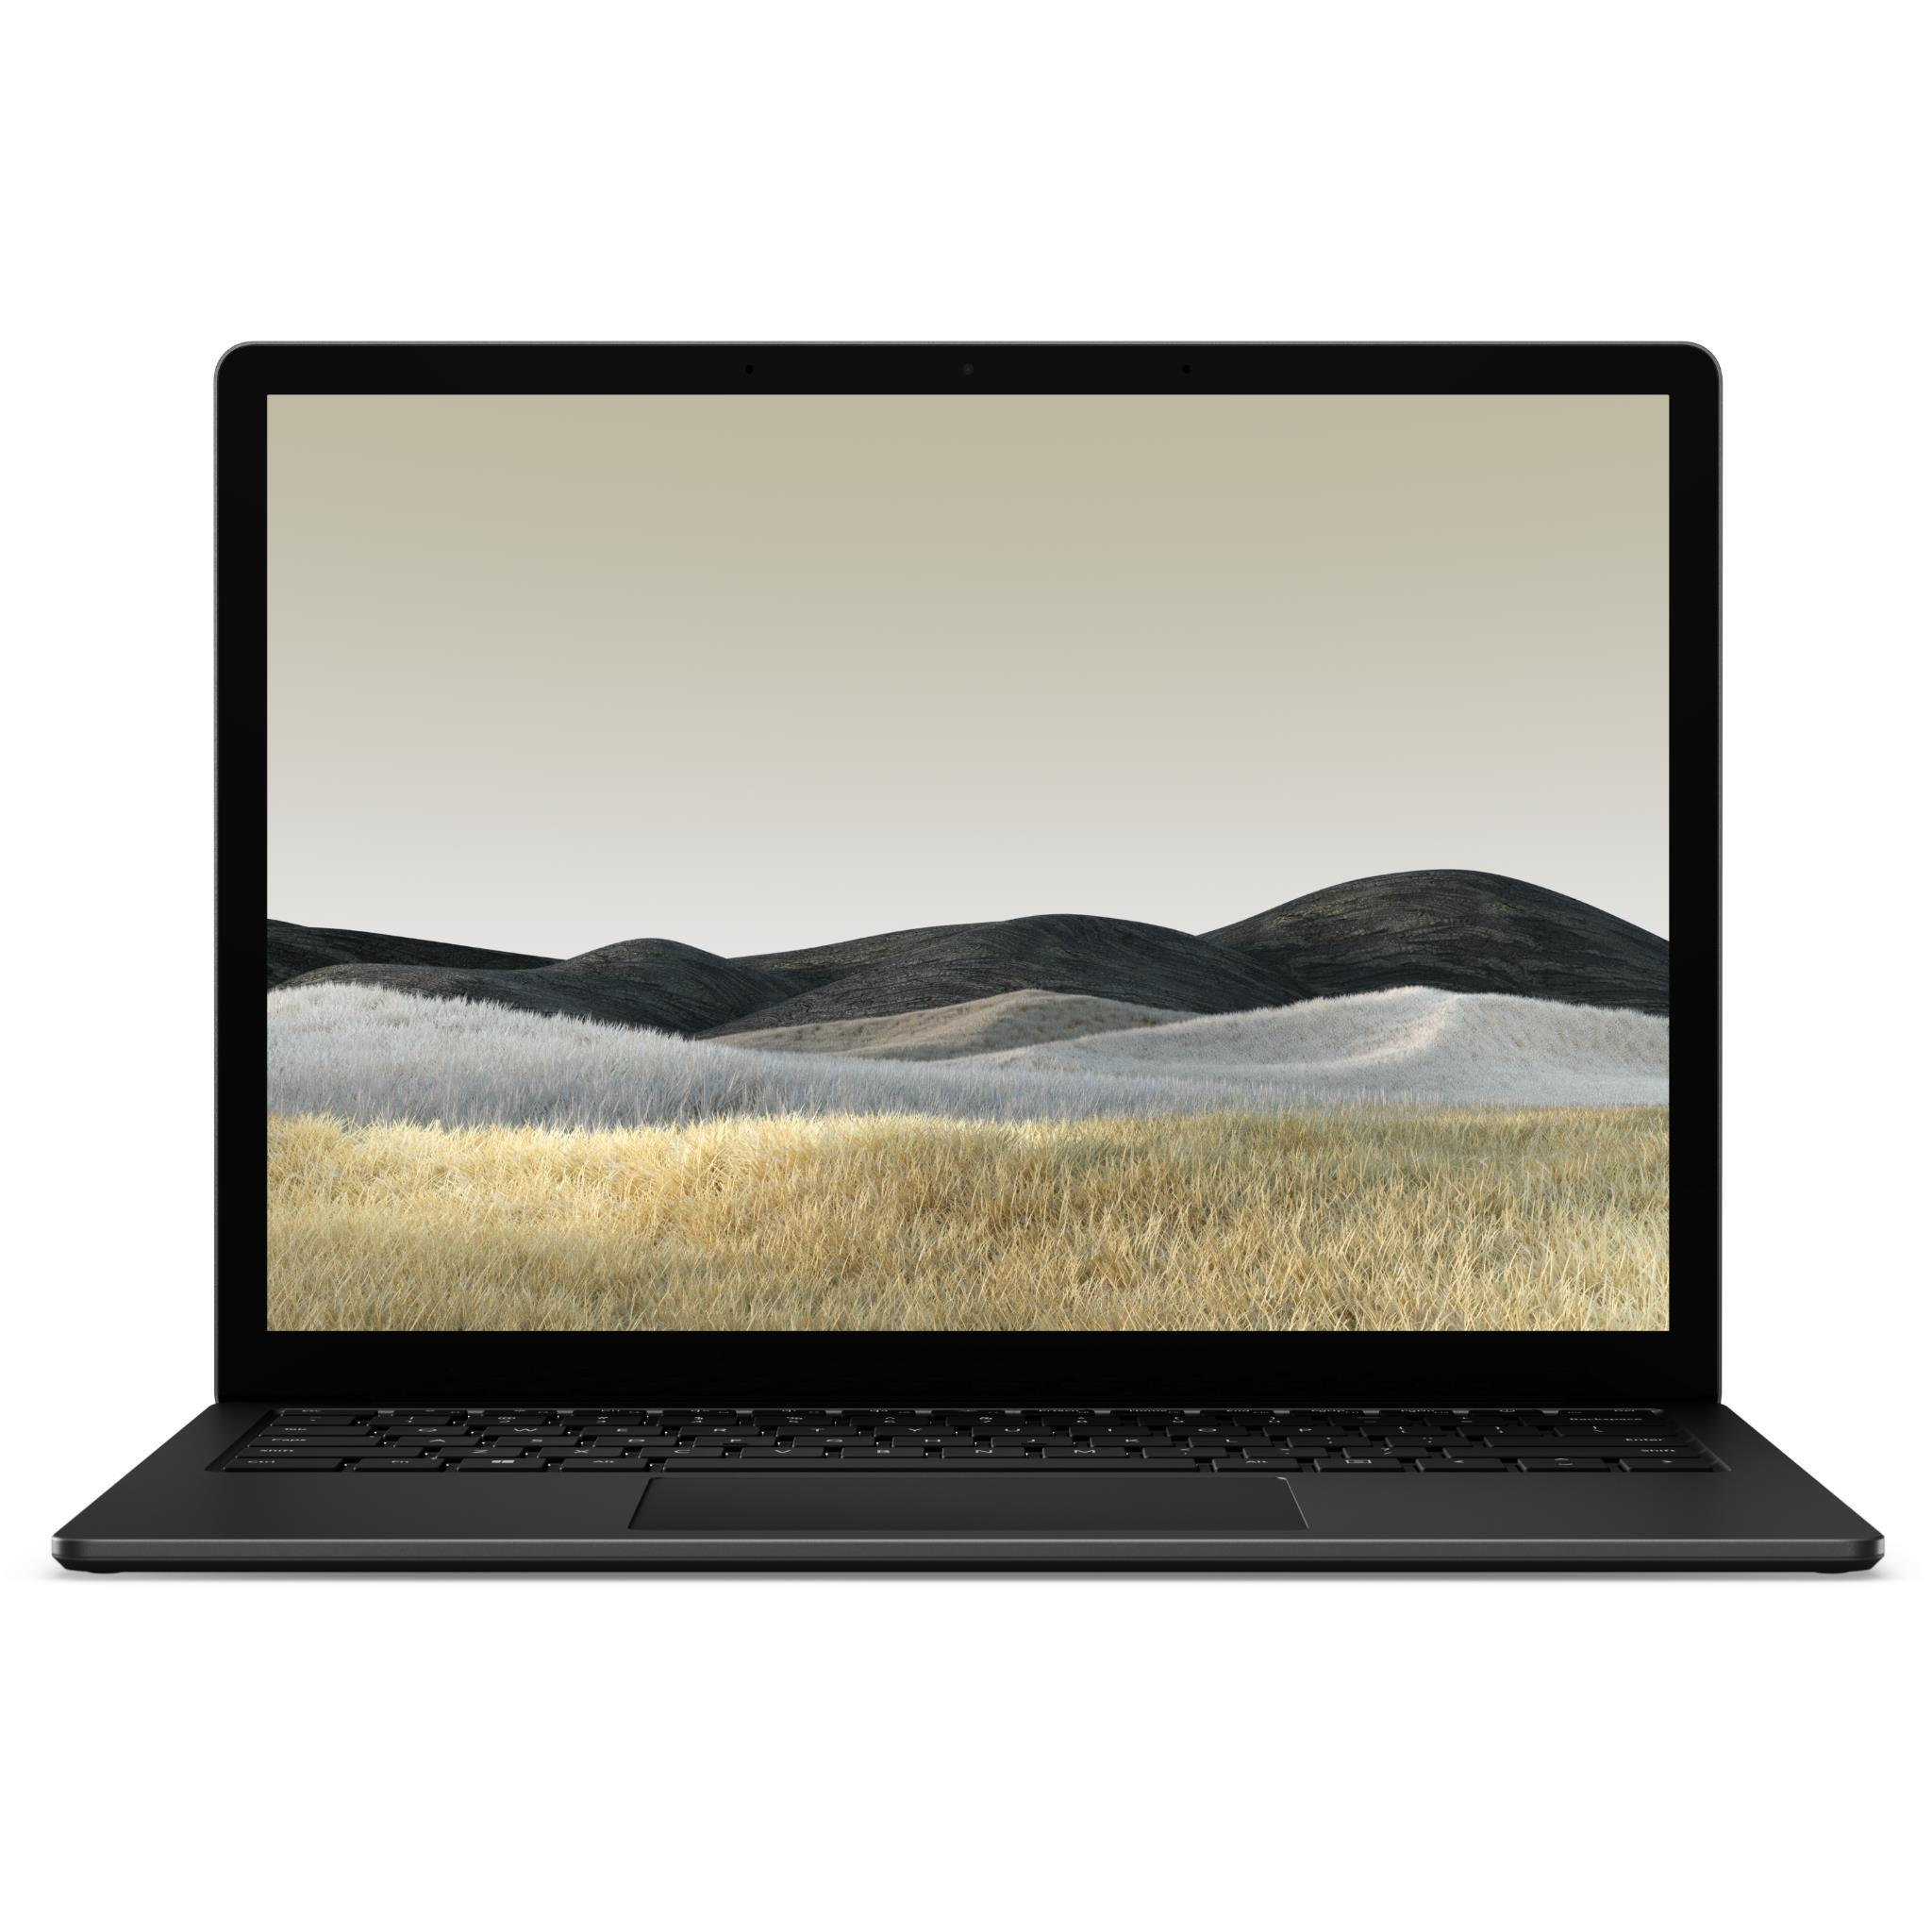 Microsoft Surface Laptop 3 15″ AMD 256GB/16GB (Black)